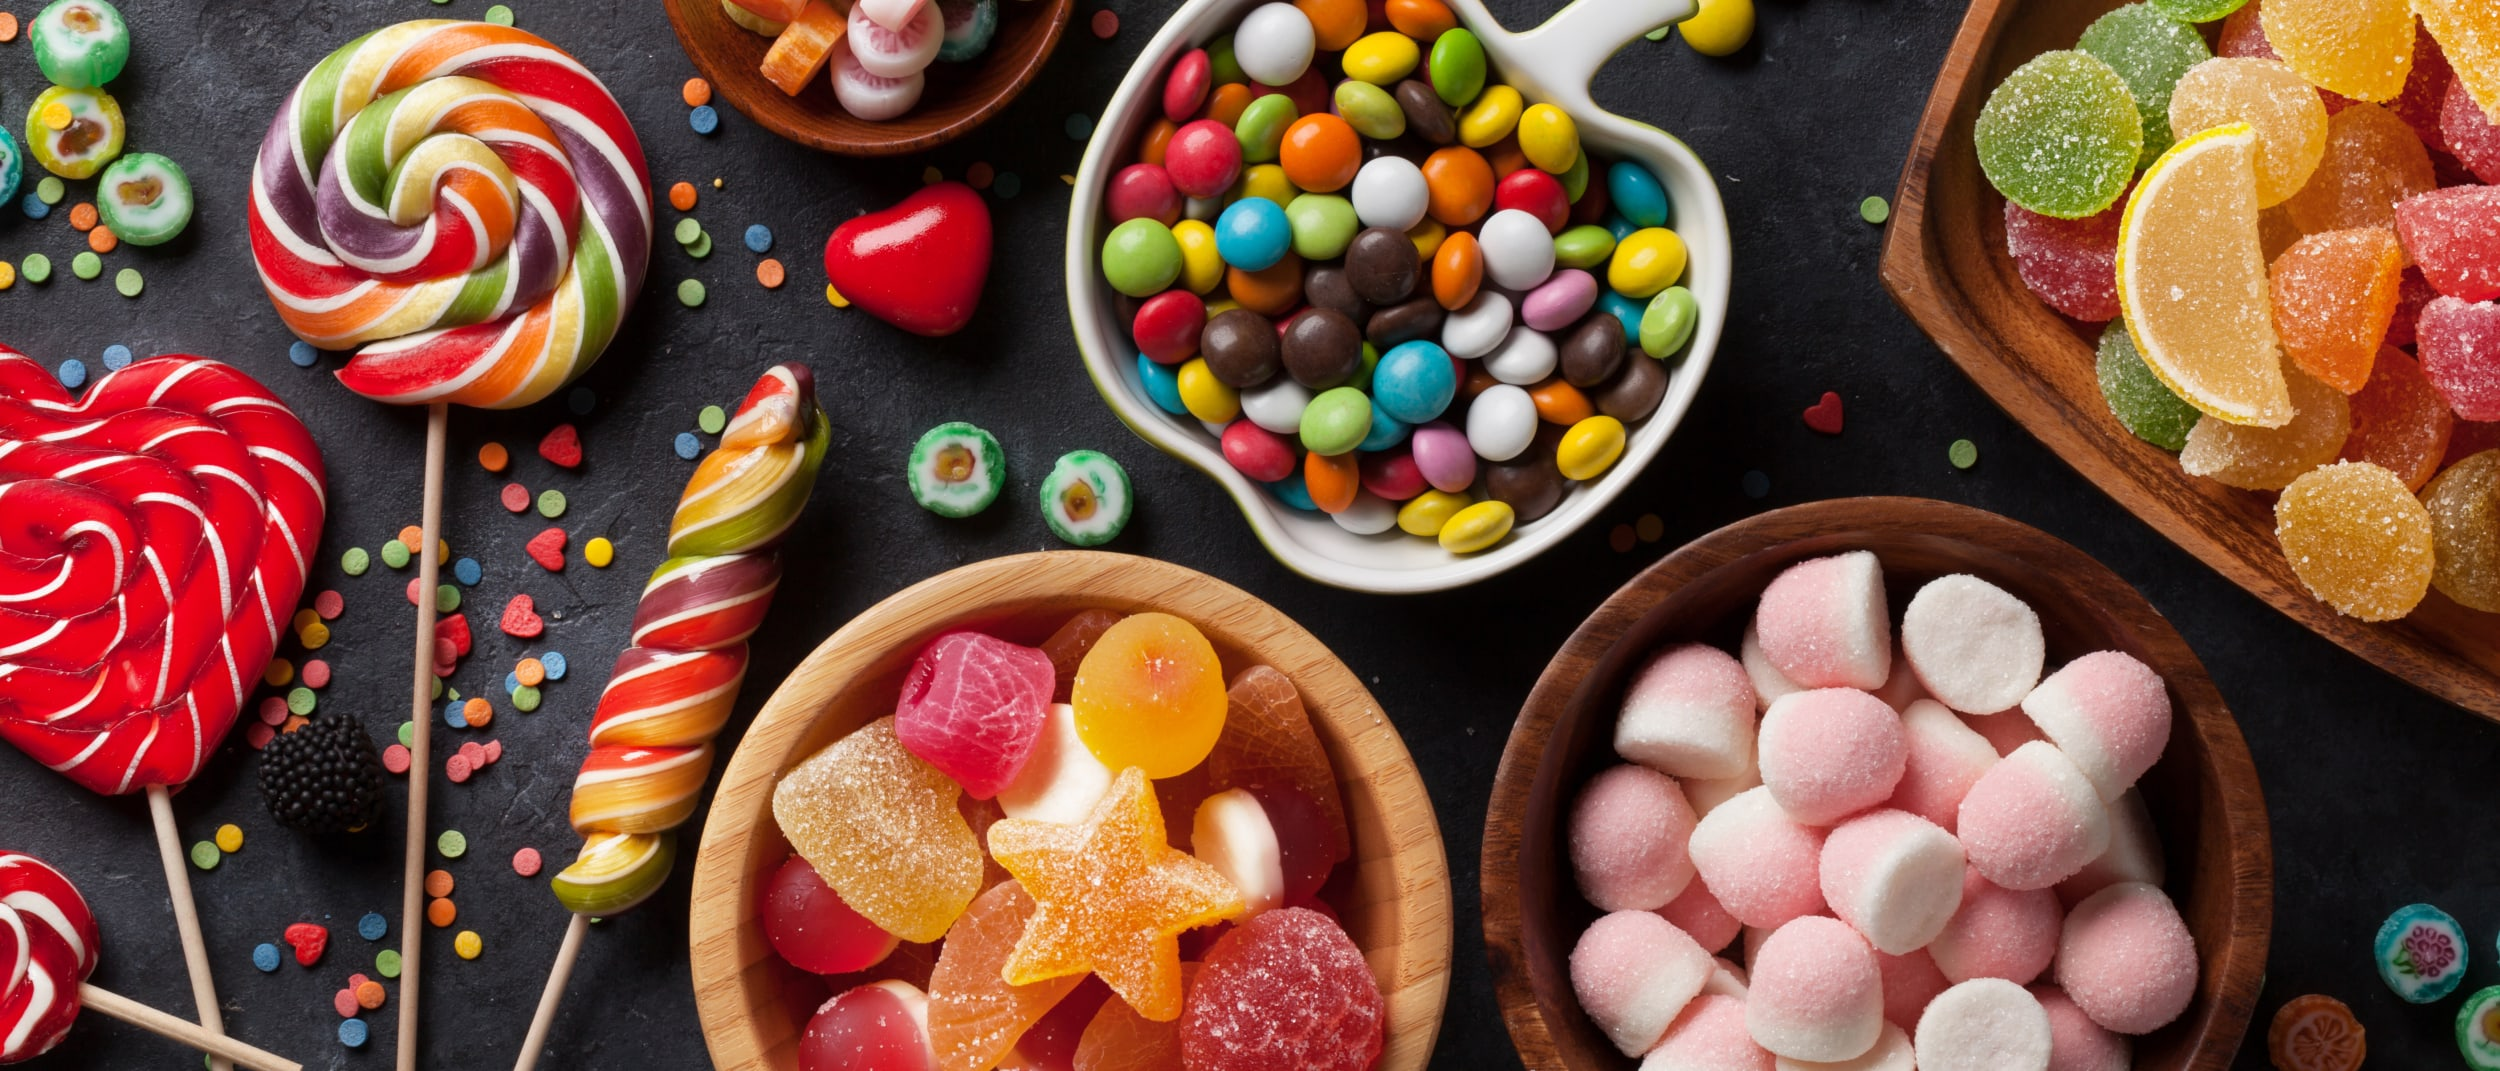 Table of lollies and sweets